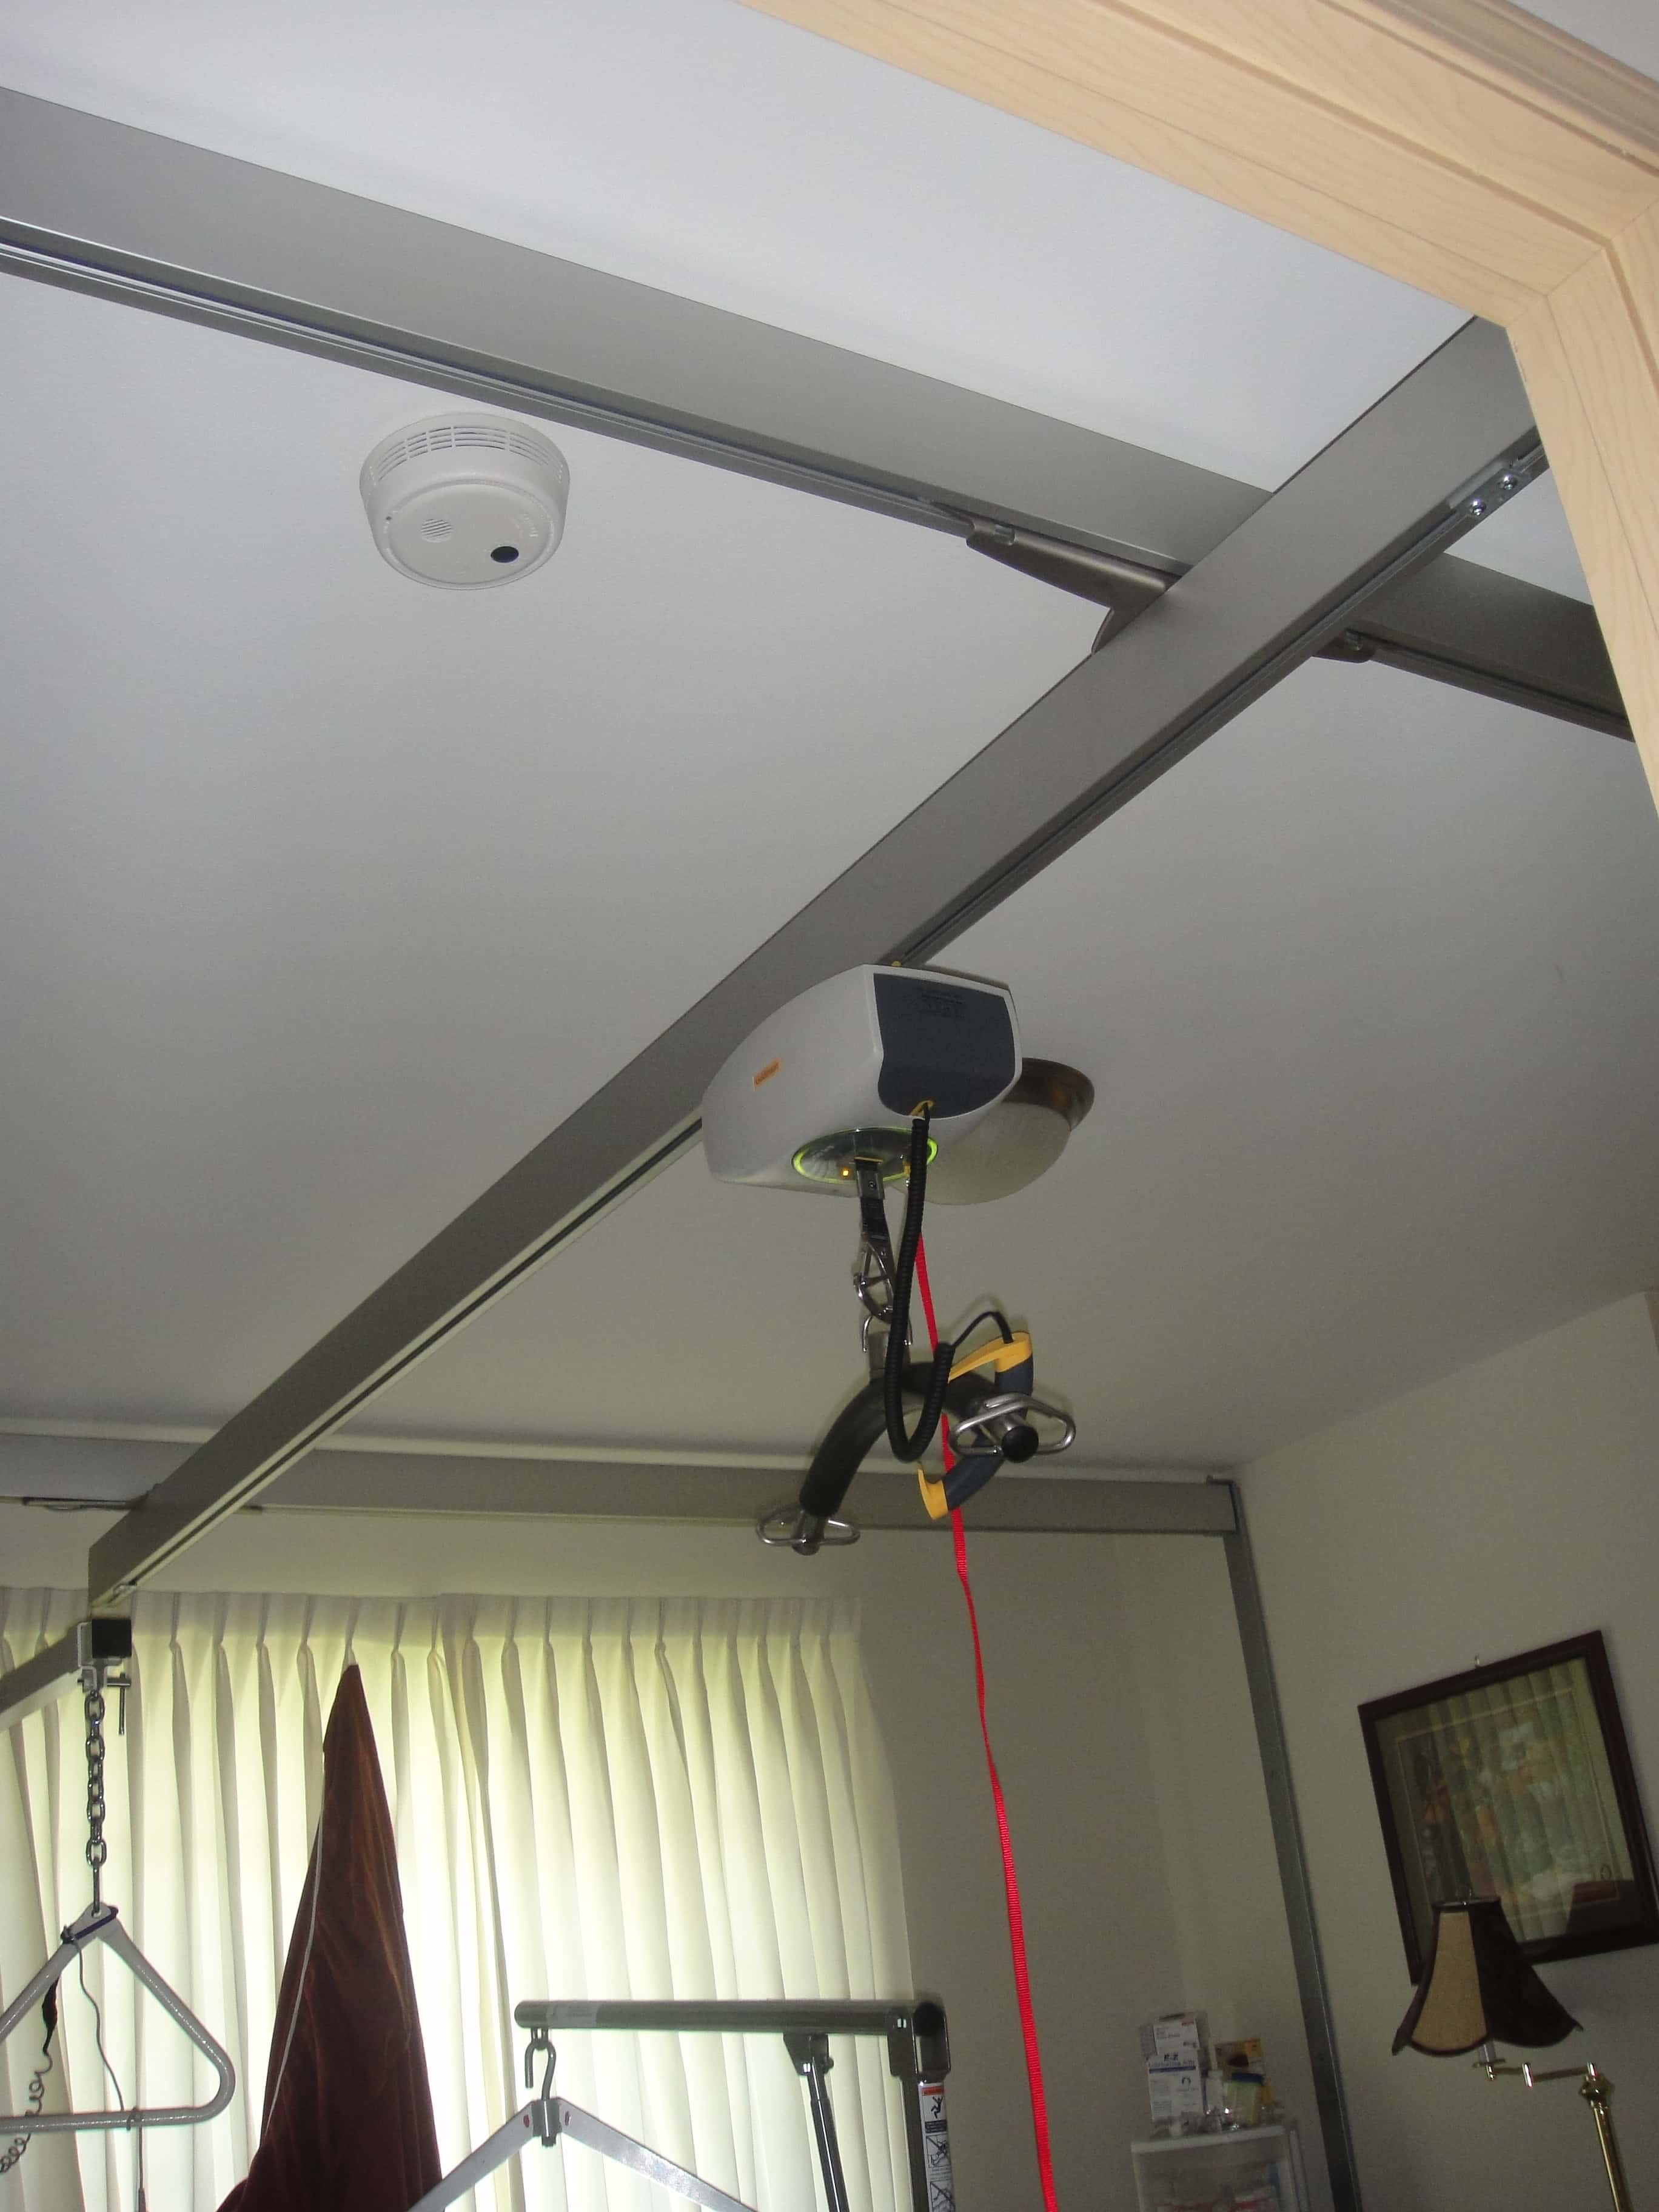 ceiling track lifts - access and mobility